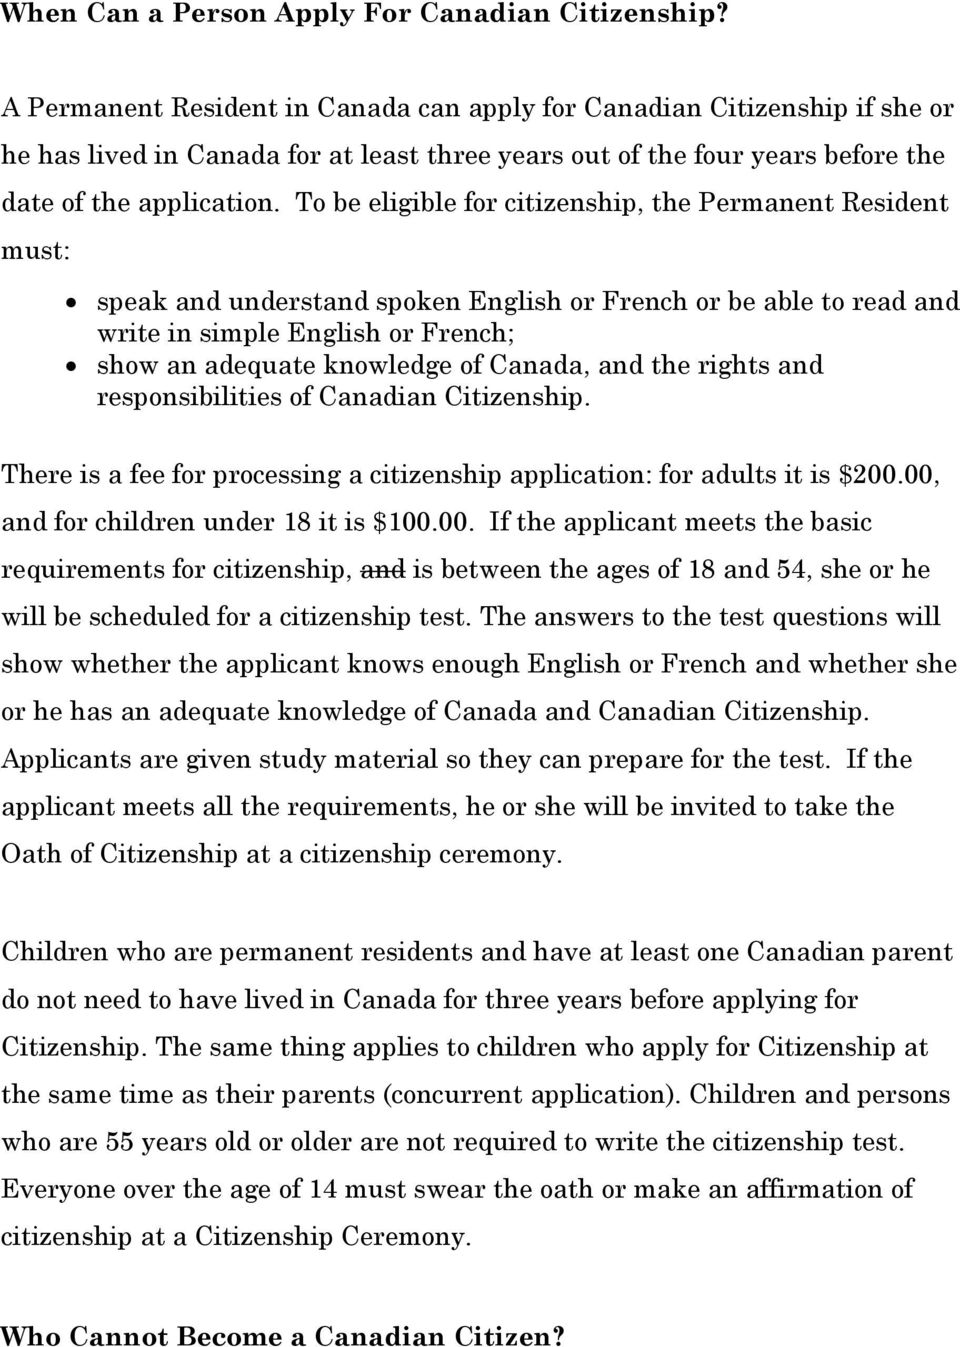 To be eligible for citizenship, the Permanent Resident must: speak and understand spoken English or French or be able to read and write in simple English or French; show an adequate knowledge of